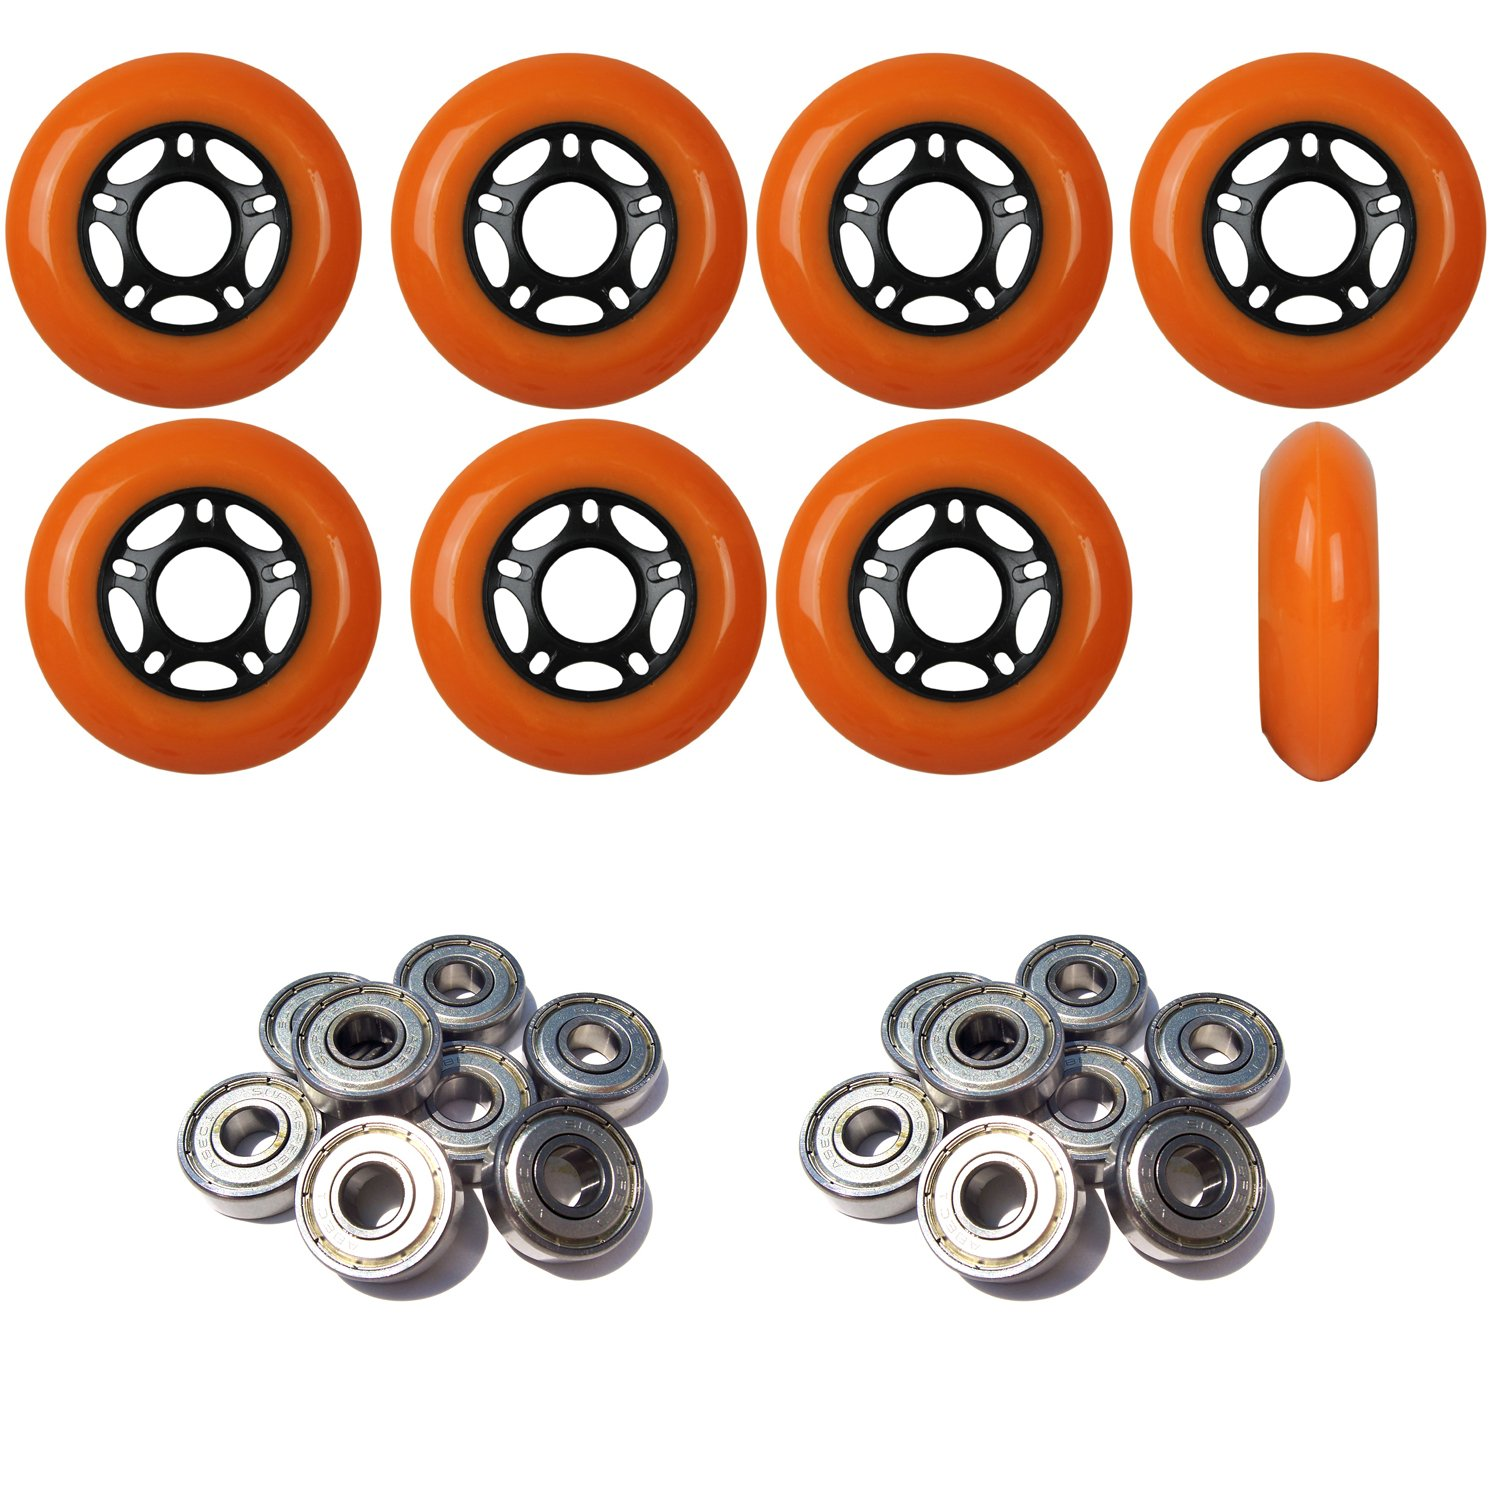 Player's Choice Outdoor Inline Skate Wheels 80MM 89a Orange x8 W/ABEC 9 Bearings by Player's Choice